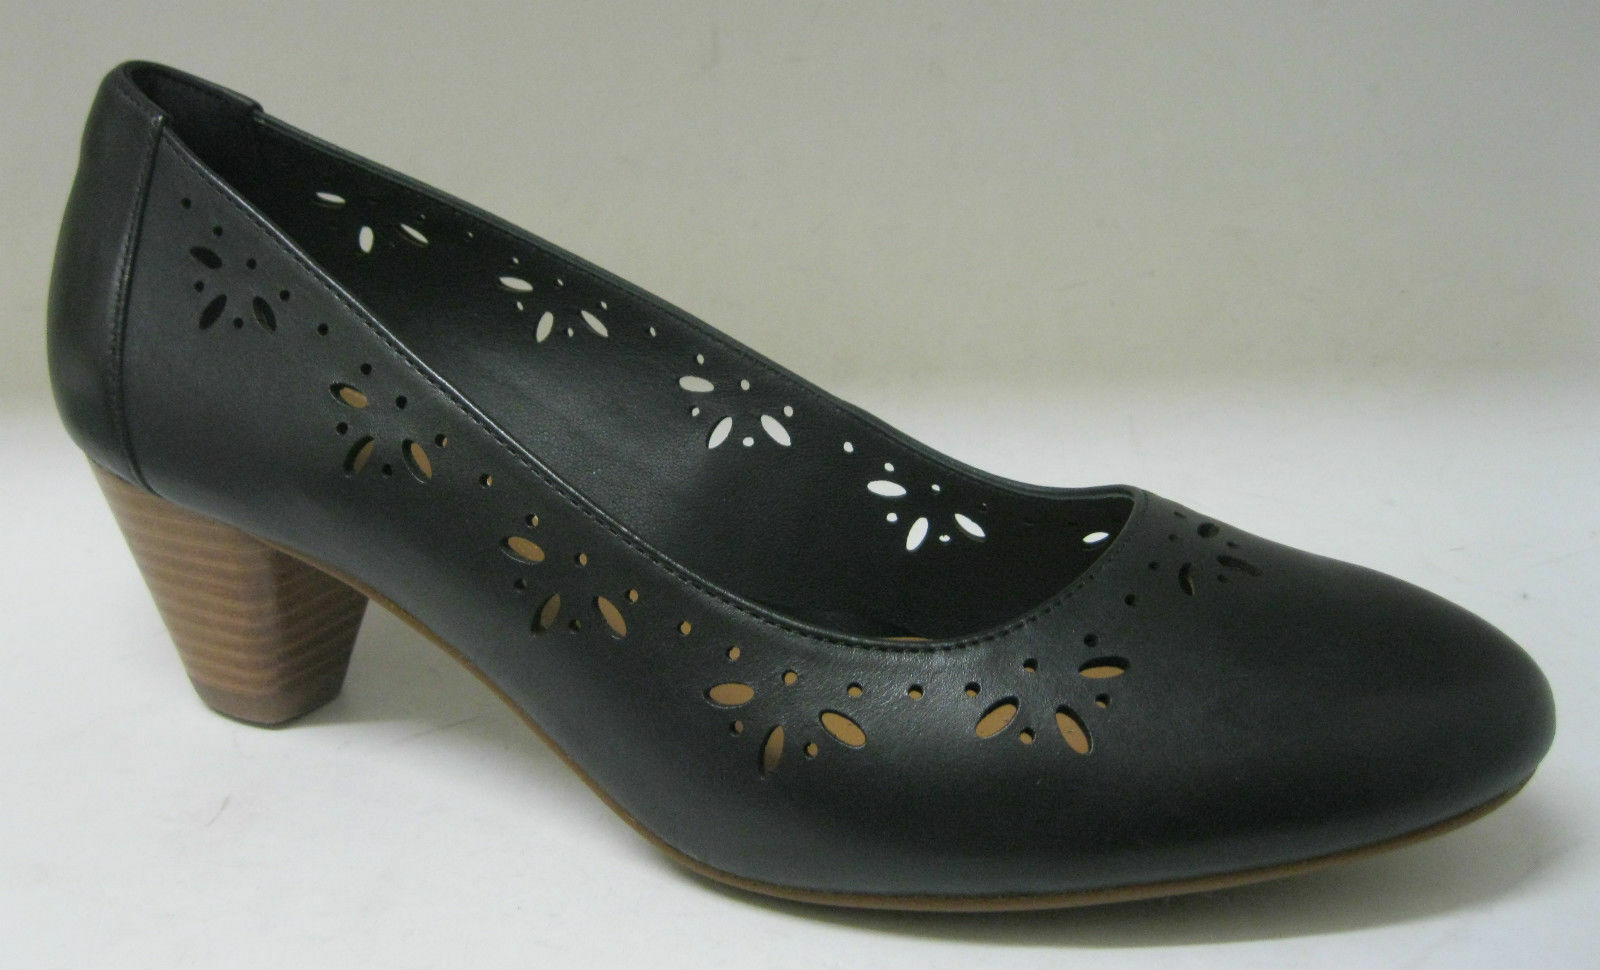 CLARKS 'DENNY DAZZLE' LADIES BLACK LEATHER EE FITTING